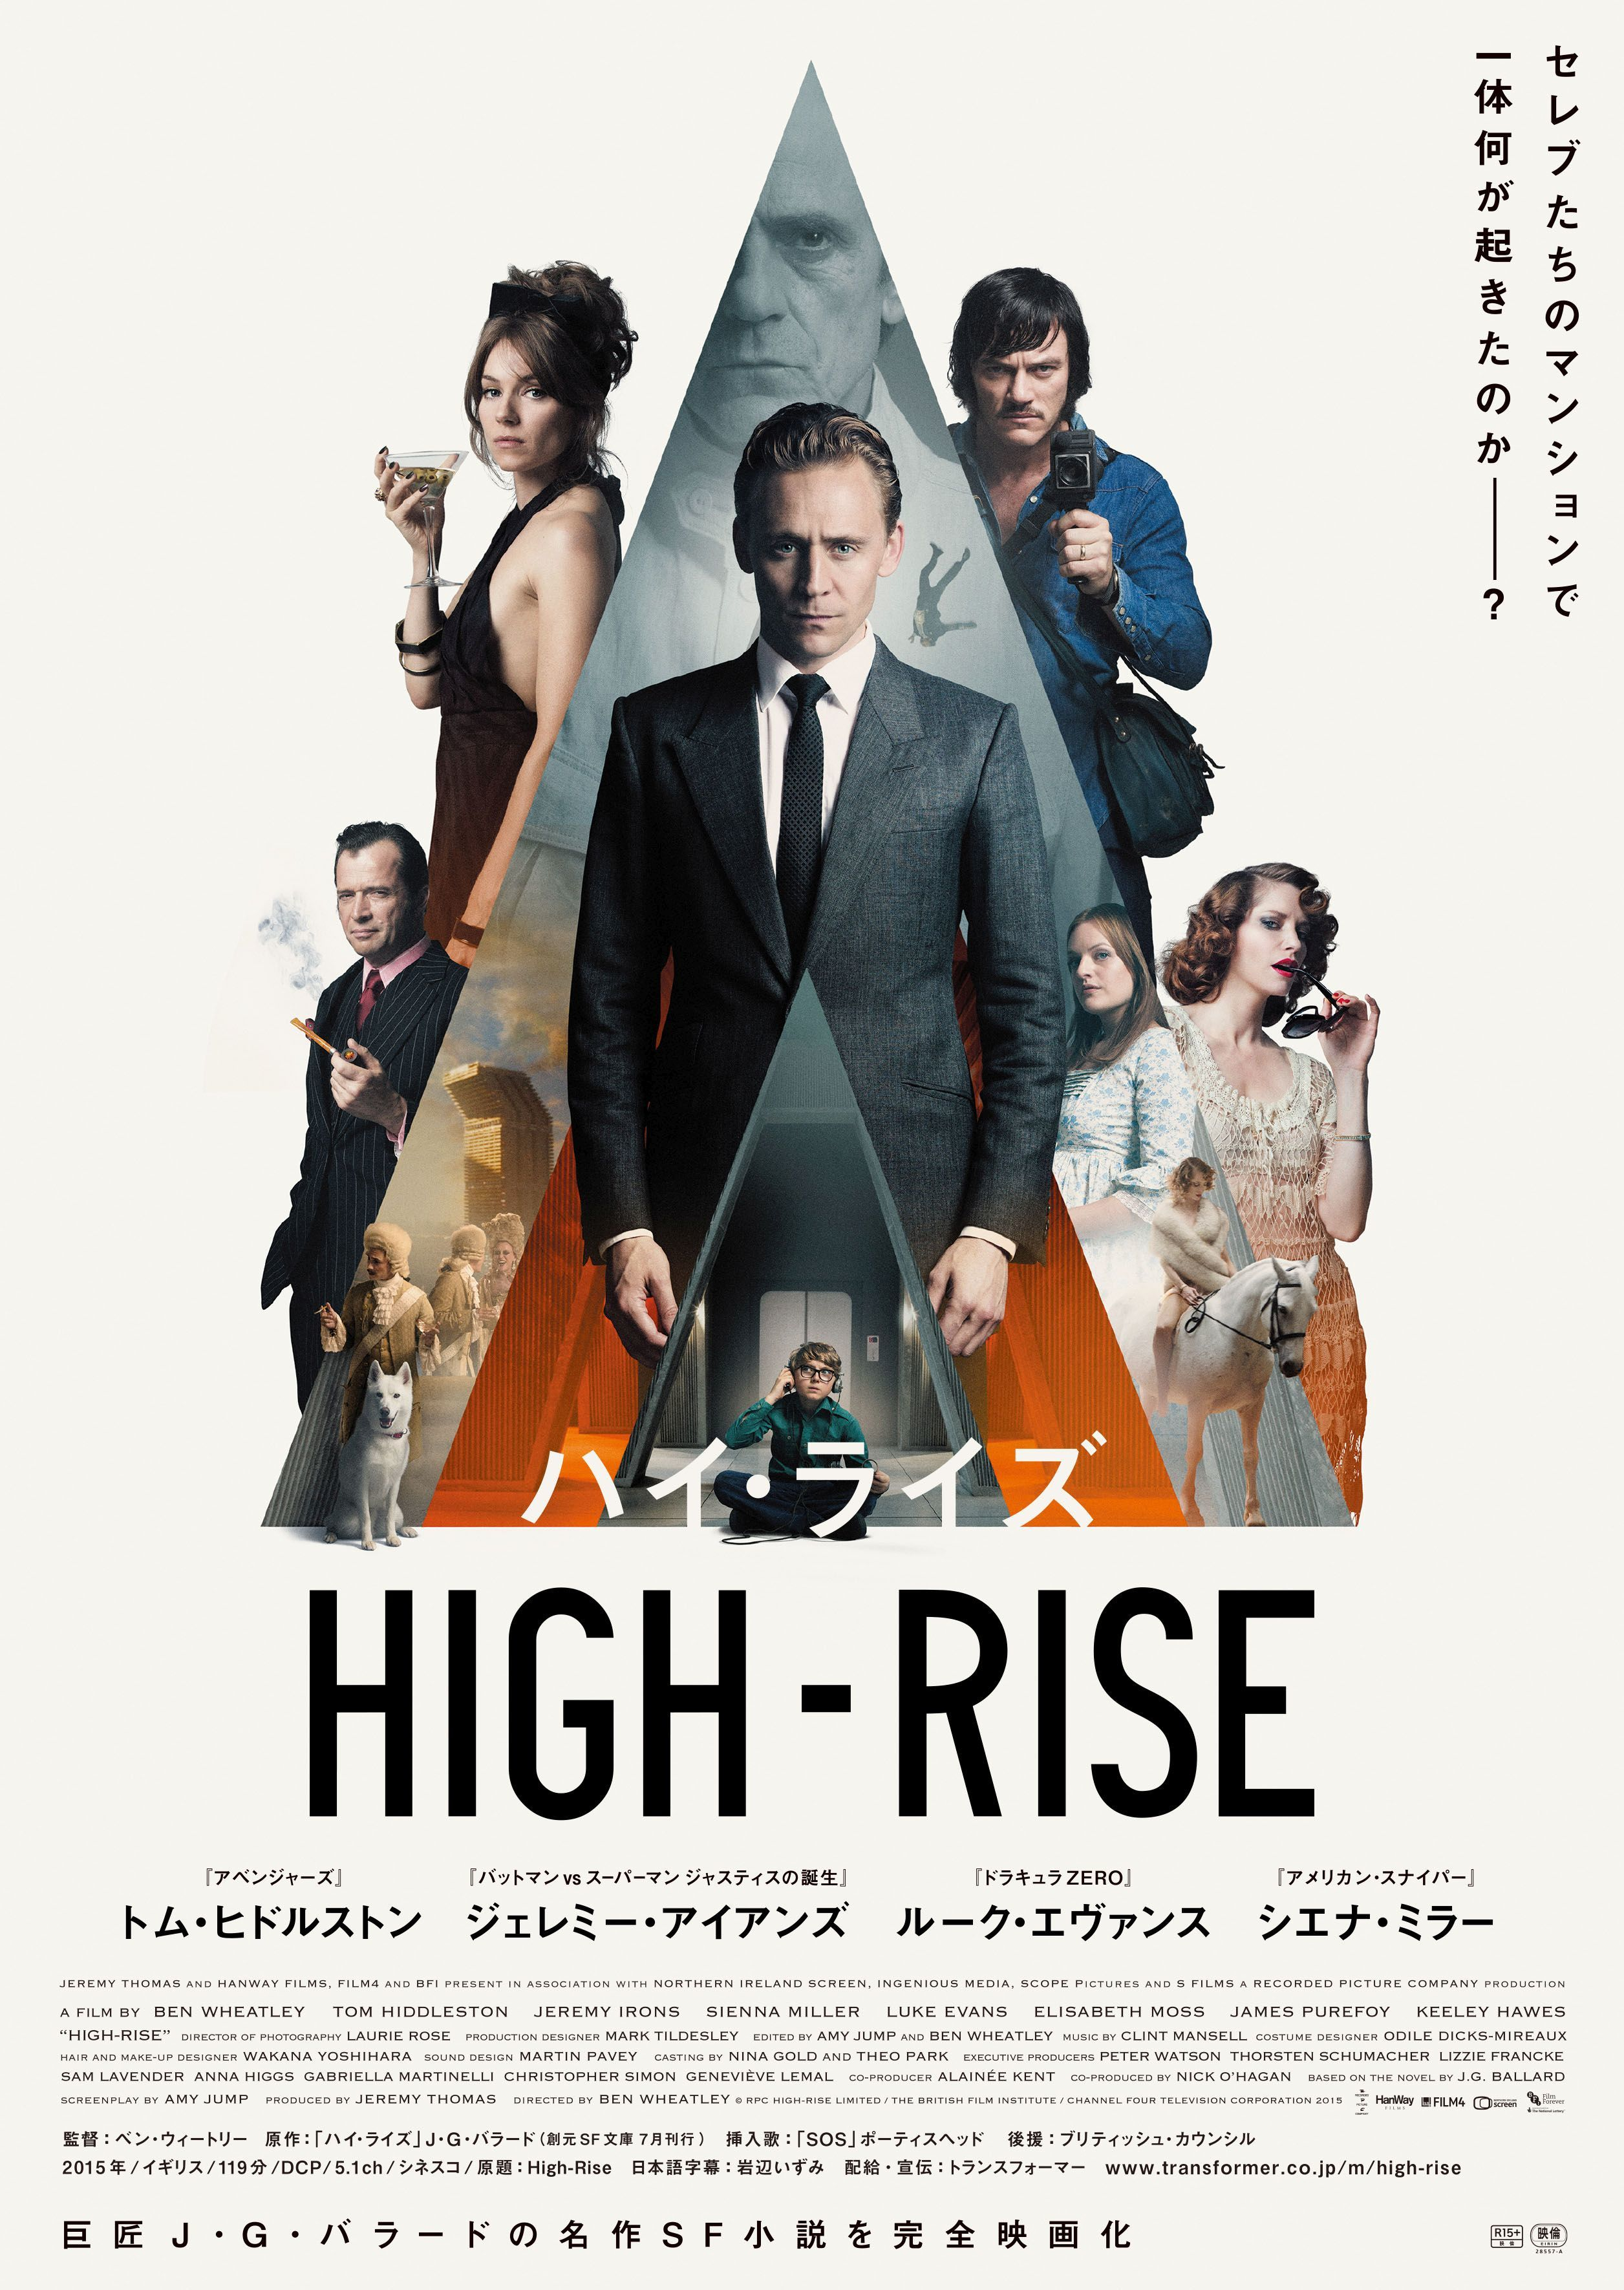 © RPC HIGH-RISE LIMITED / THE BRITISH FILM INSTITUTE / CHANNEL FOUR TELEVISION CORPORATION 2015